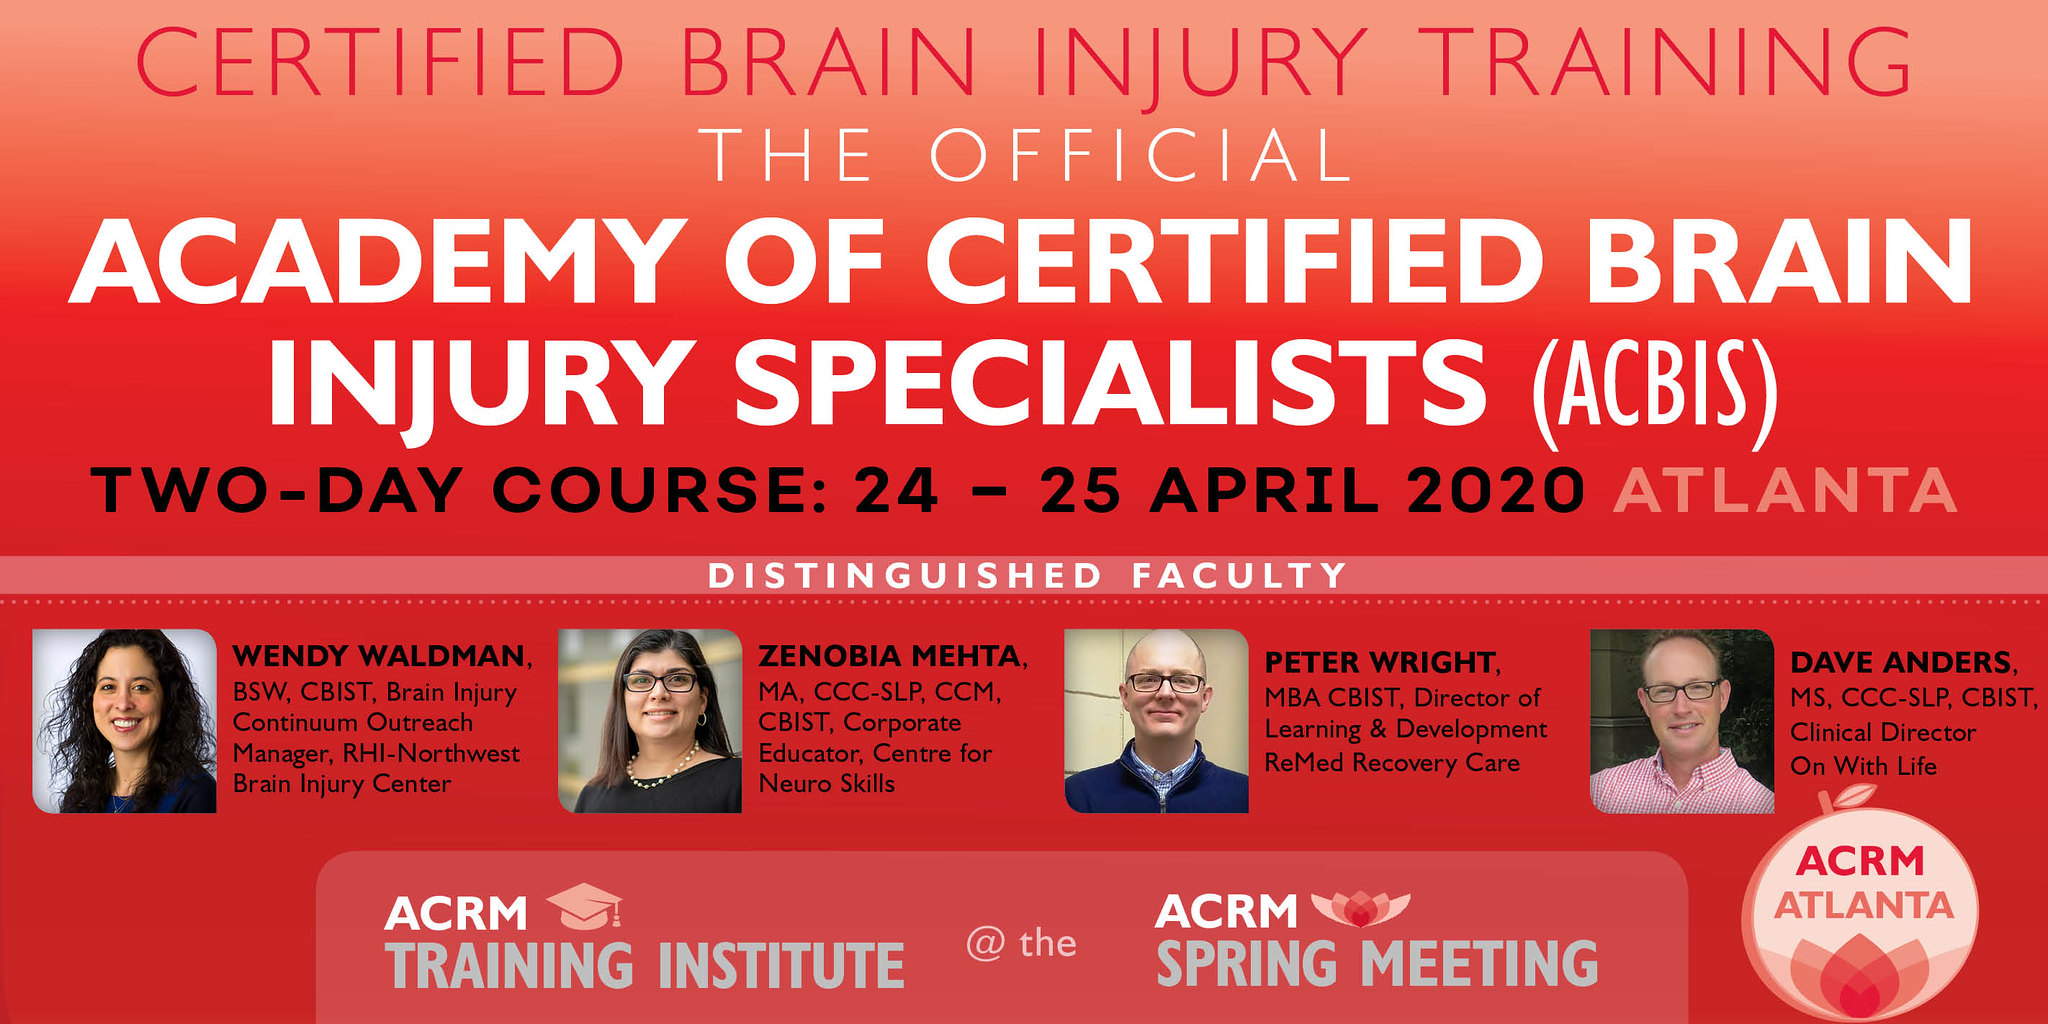 Academy of Certified Brain Injury Specialists (ACBIS) Training image